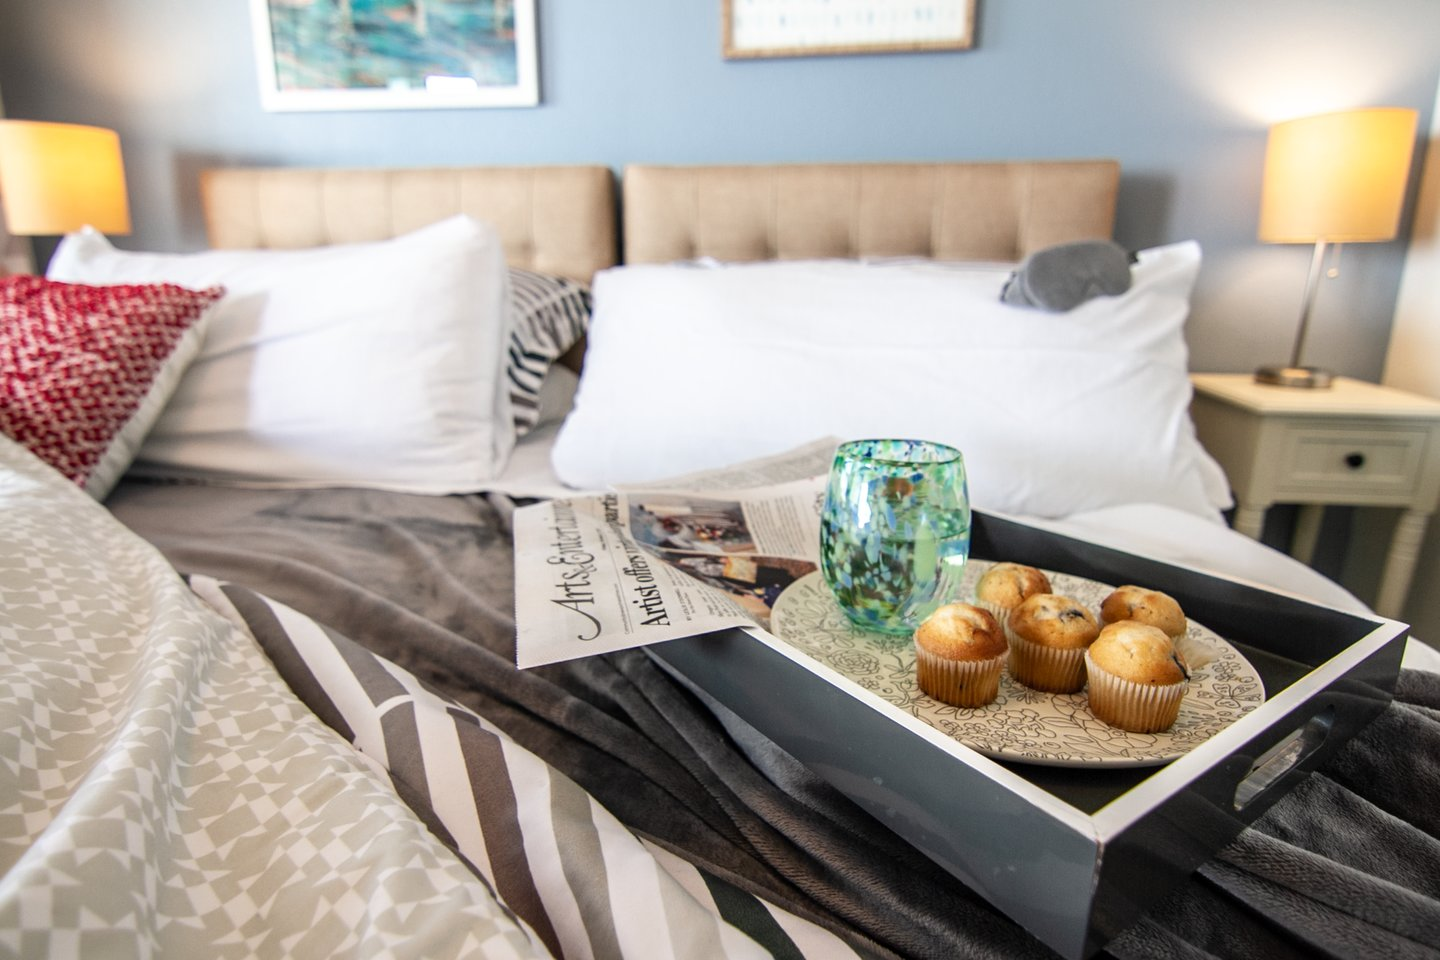 You can't beat breakfast in bed while listening to the waves.